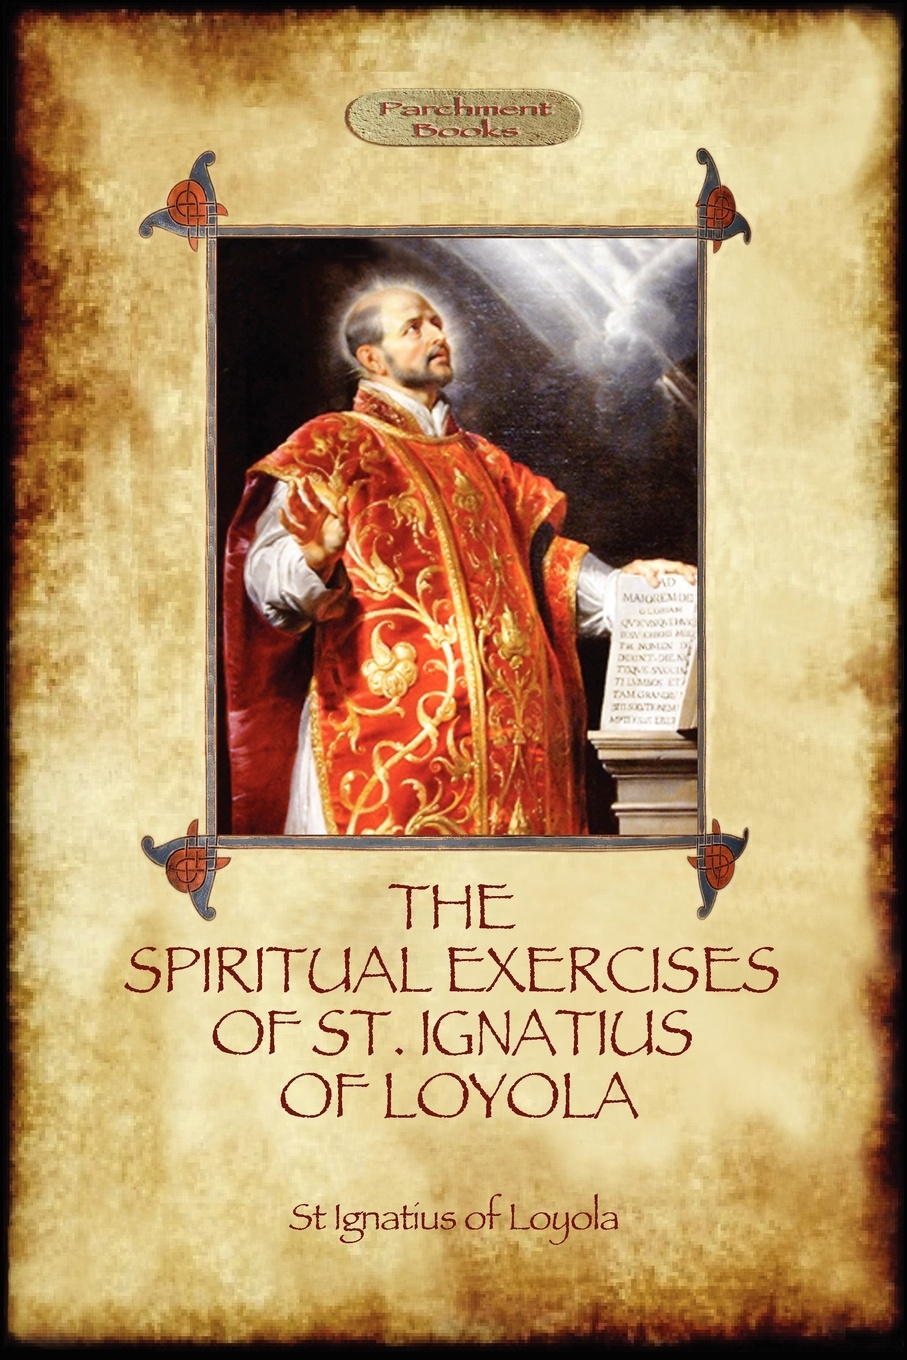 лучшая цена St Ignatius Of Loyola The Spiritual Exercises of St Ignatius of Loyola. Christian Instruction from the Founder of the Jesuits (Aziloth Books)